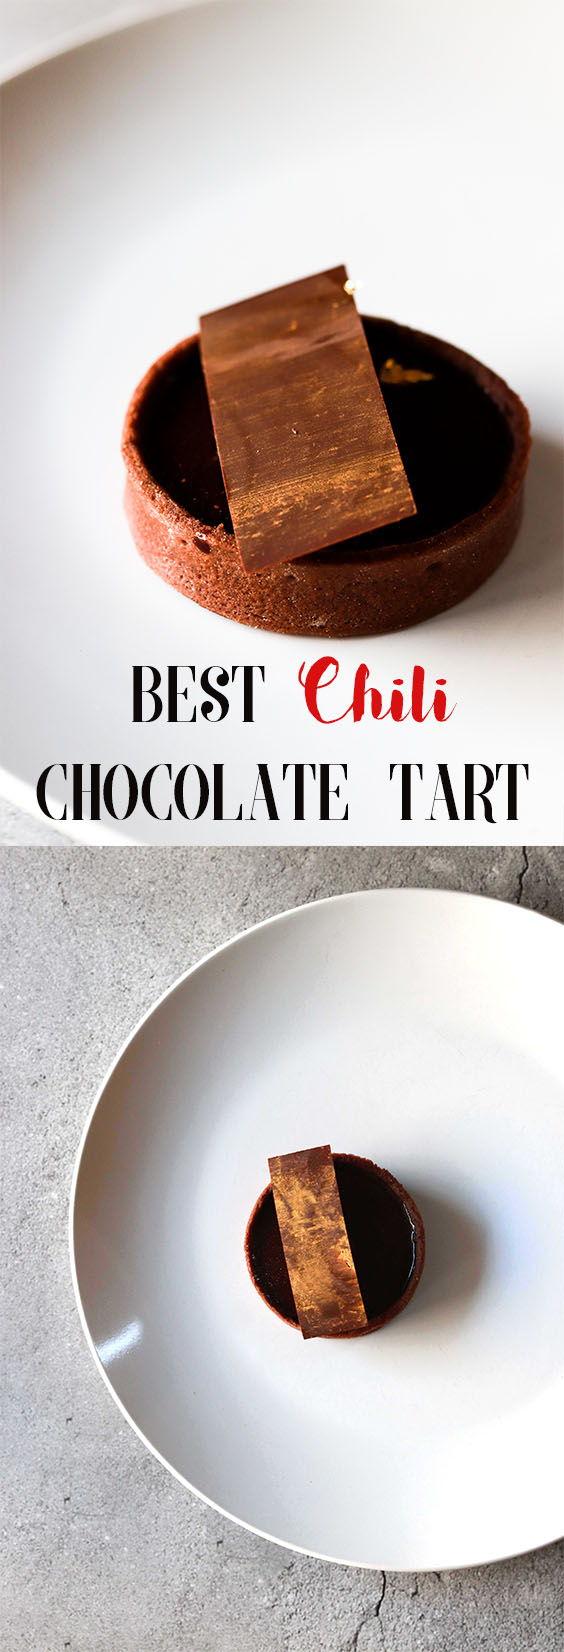 Chili Chocolate Tart